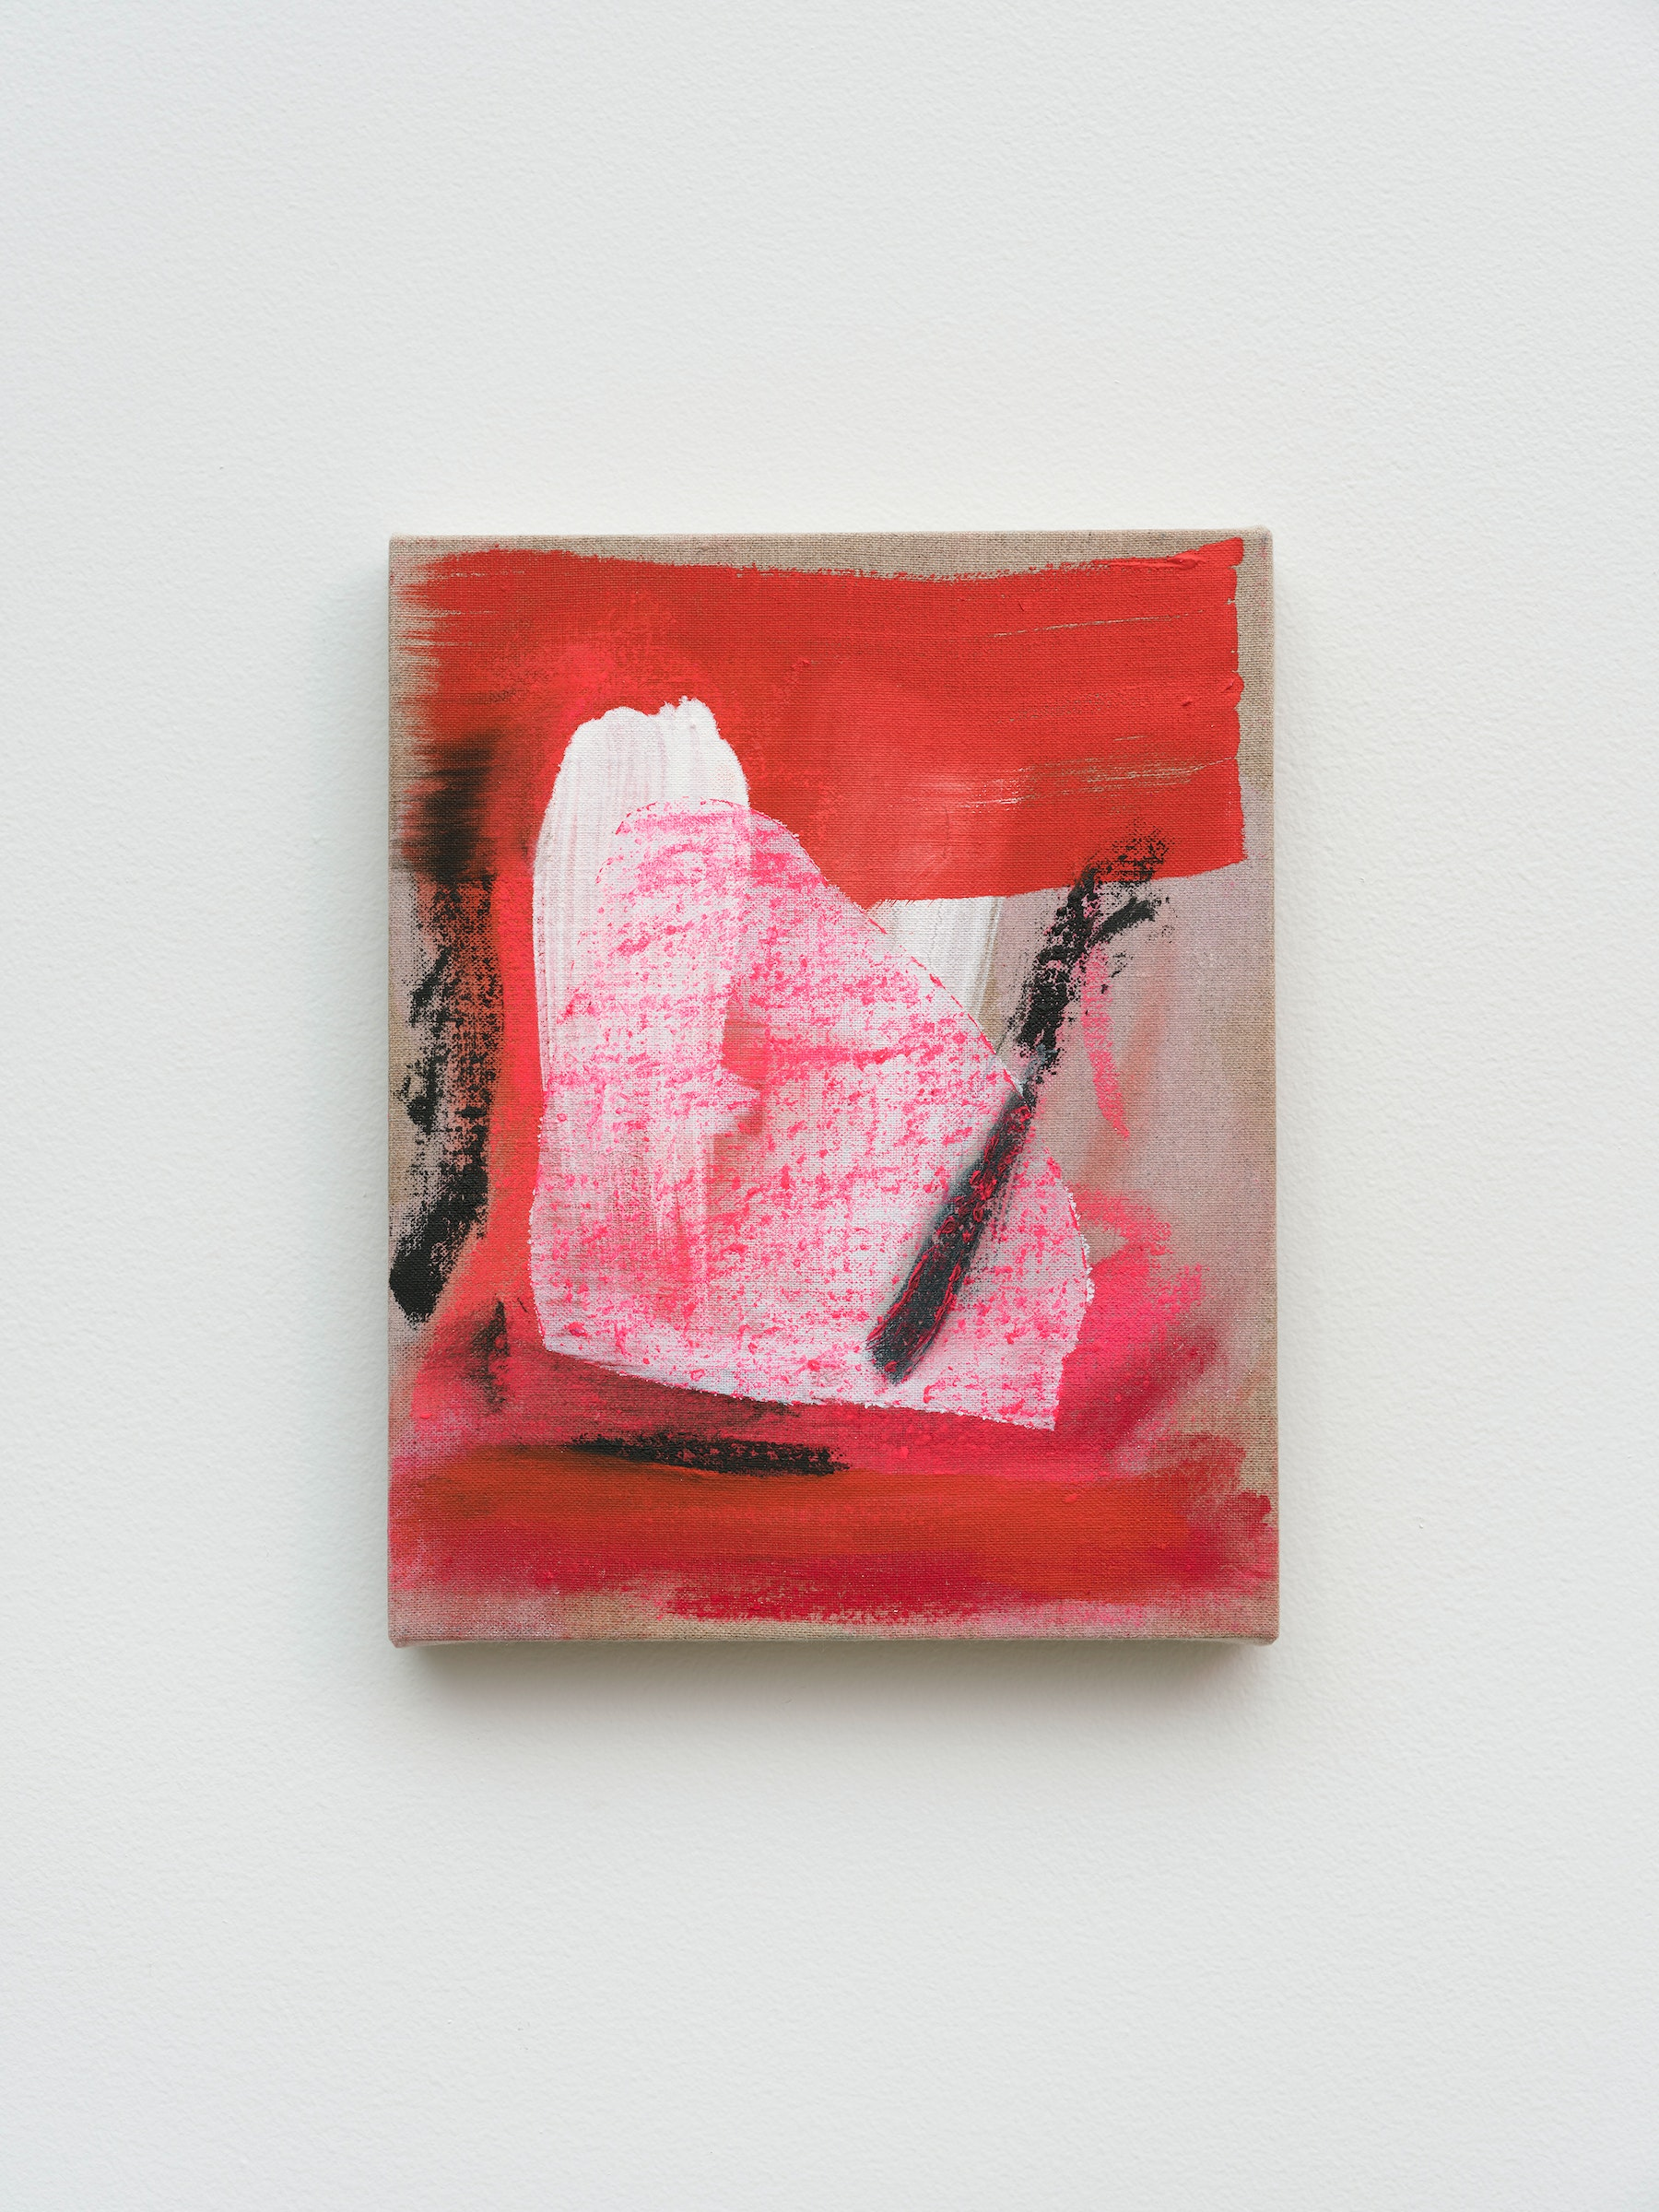 """Monique Van Genderen """"Abstract Lou,"""" 2021 Oil on linen 10"""" x 8"""" [HxW] (25.4 x 20.32 cm) Inventory #VGE419 Courtesy of the artist and Vielmetter Los Angeles Photo credit: Jeff McLane"""